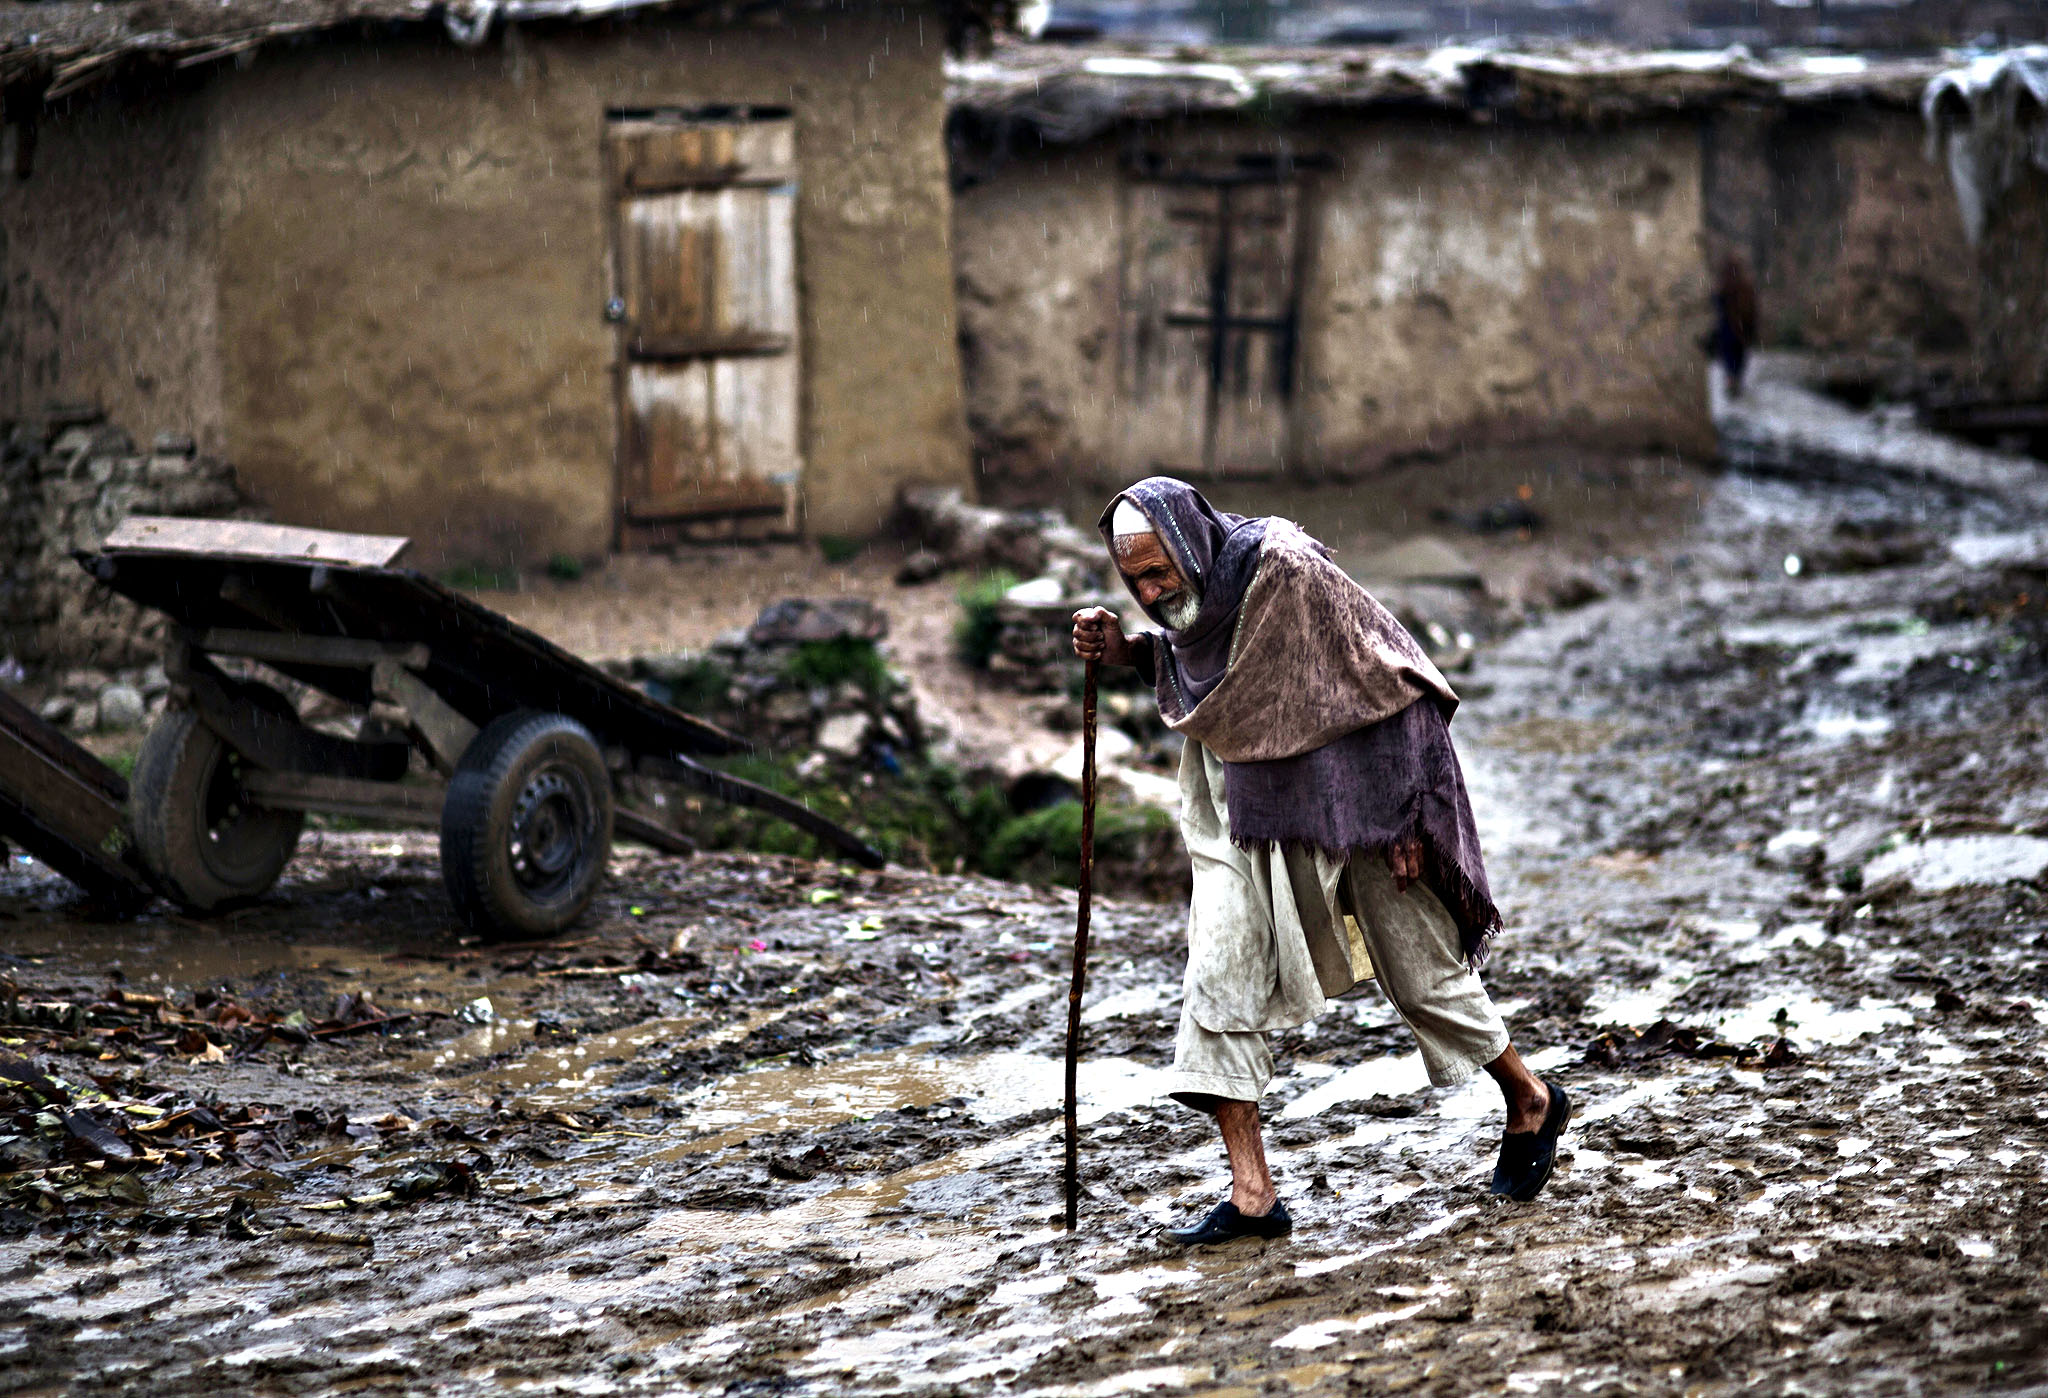 An elderly Afghan refugee man walks toward the main road through a muddy slippery track, during a rainfall in a poor neighborhood on the outskirts of Islamabad, Pakistan, Friday, March 28, 2014. For more than three decades, Pakistan has been home to one of the world s largest refugee communities: hundreds of thousands of Afghans who have fled the repeated wars and fighting in their country. Since the 2002 U.S.-led invasion of Afghanistan some 3.8 million Afghans have returned to their home country, according to the U.N. s refugee agency, thousands of them still live without electricity, running water and other basic services.